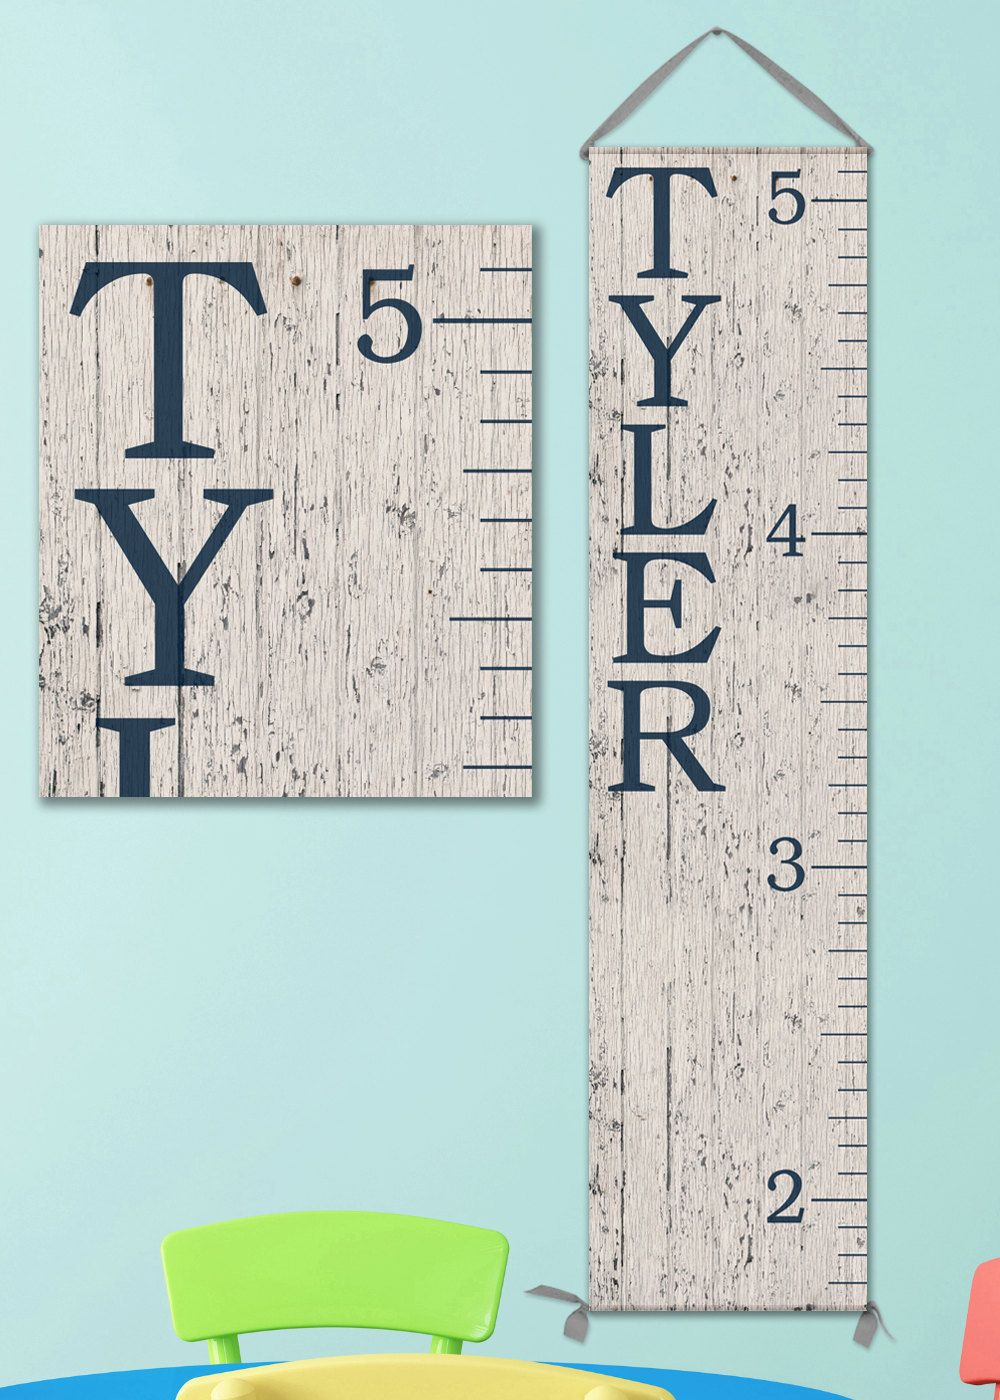 6 foot wall ruler oversized canvas growth chart ruler wooden 6 foot wall ruler oversized canvas growth chart ruler wooden height chart wood growth chart height chart boy growth chart gc0100n nvjuhfo Choice Image